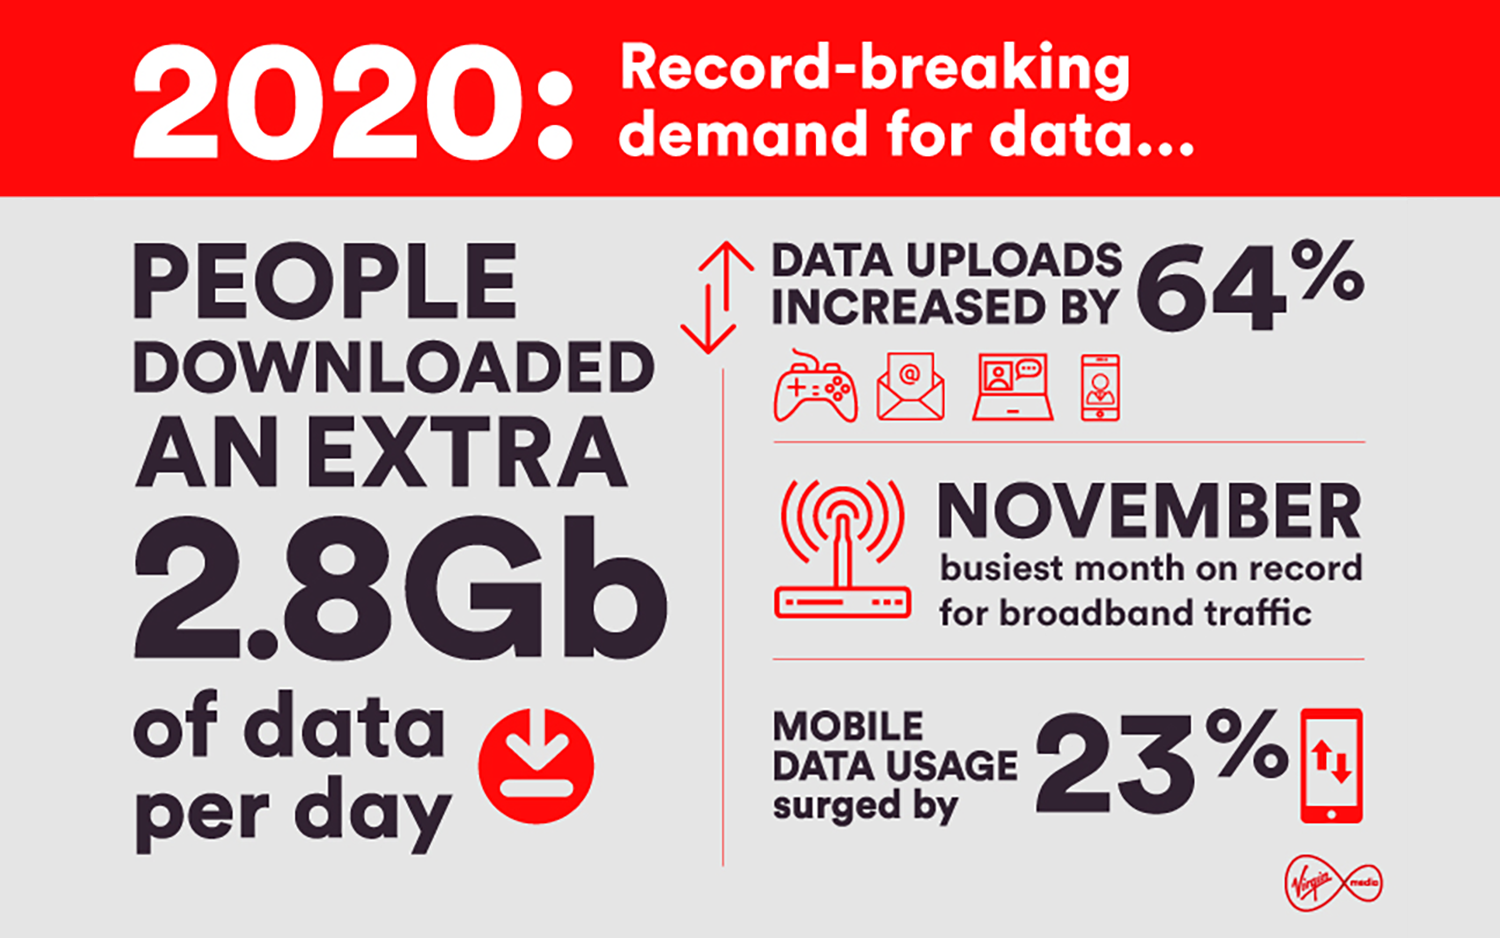 Statistics of Virgin Media's record-breaking year